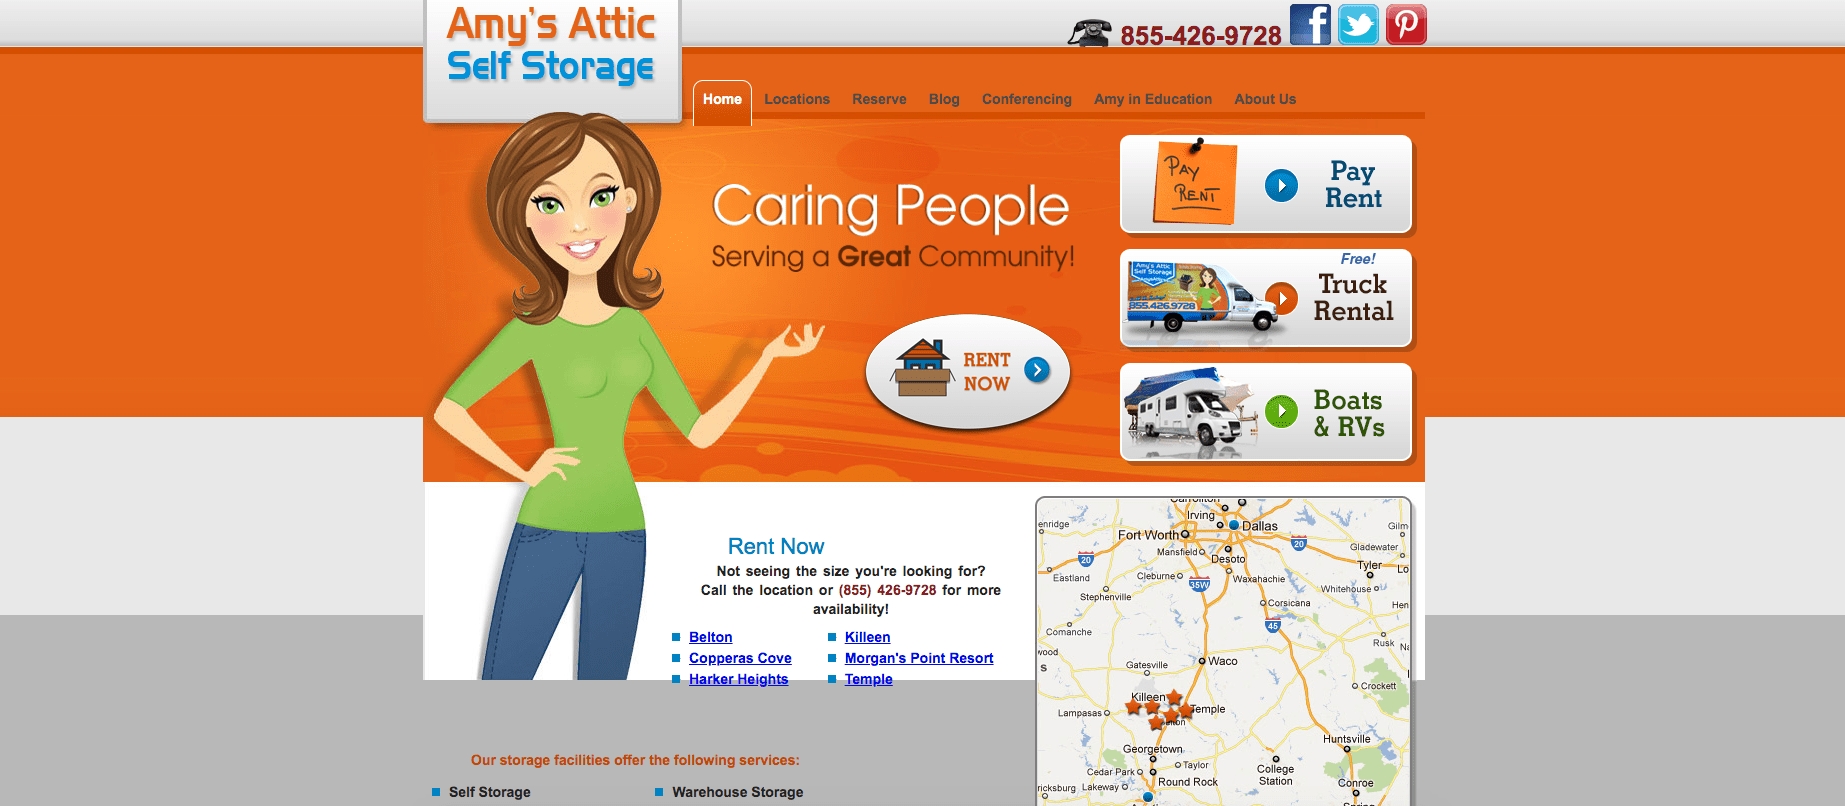 ace self storage old website